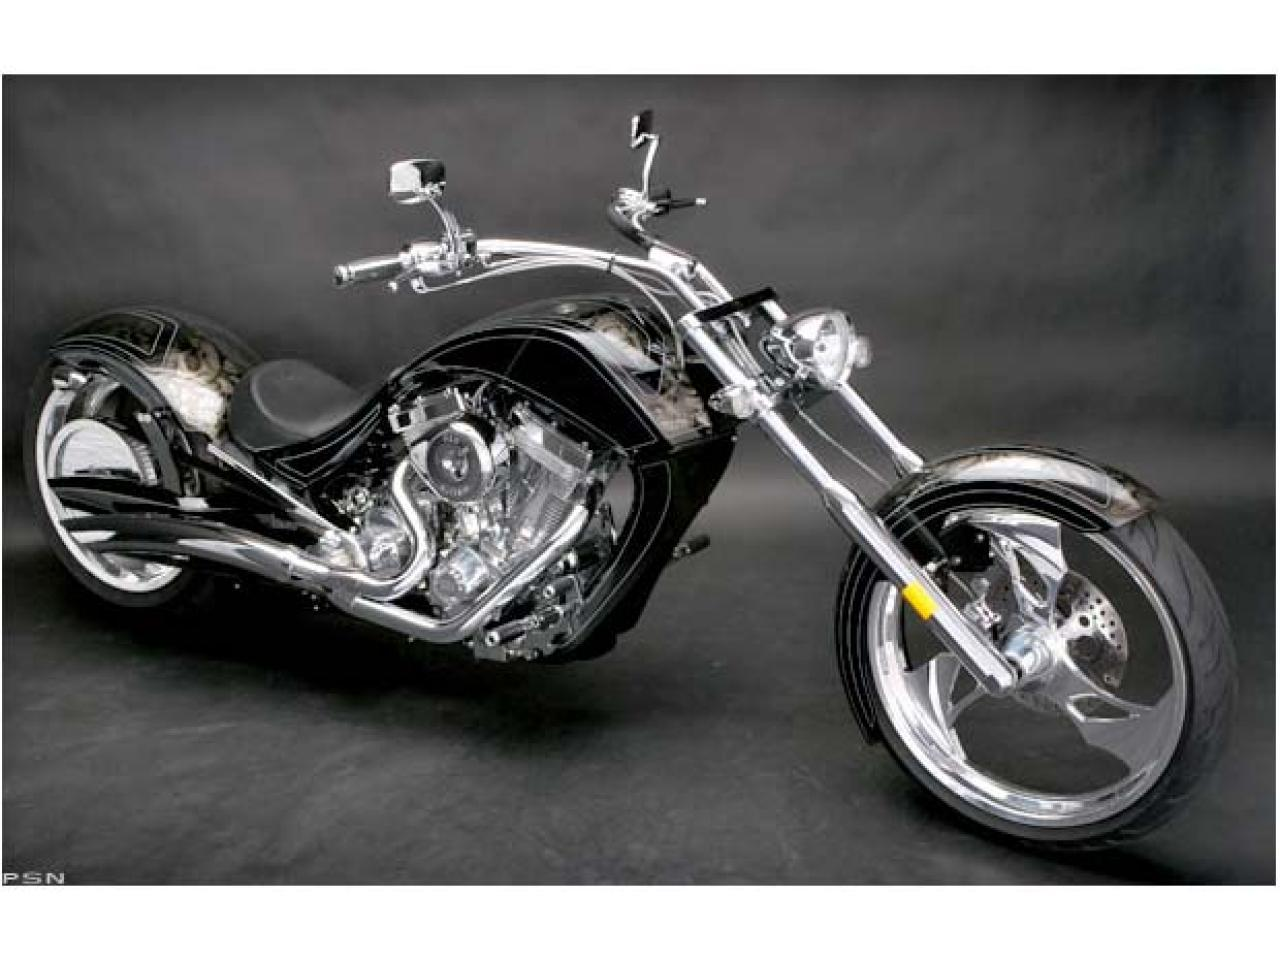 Big Bear Choppers Athena 114 X-Wedge images #92605